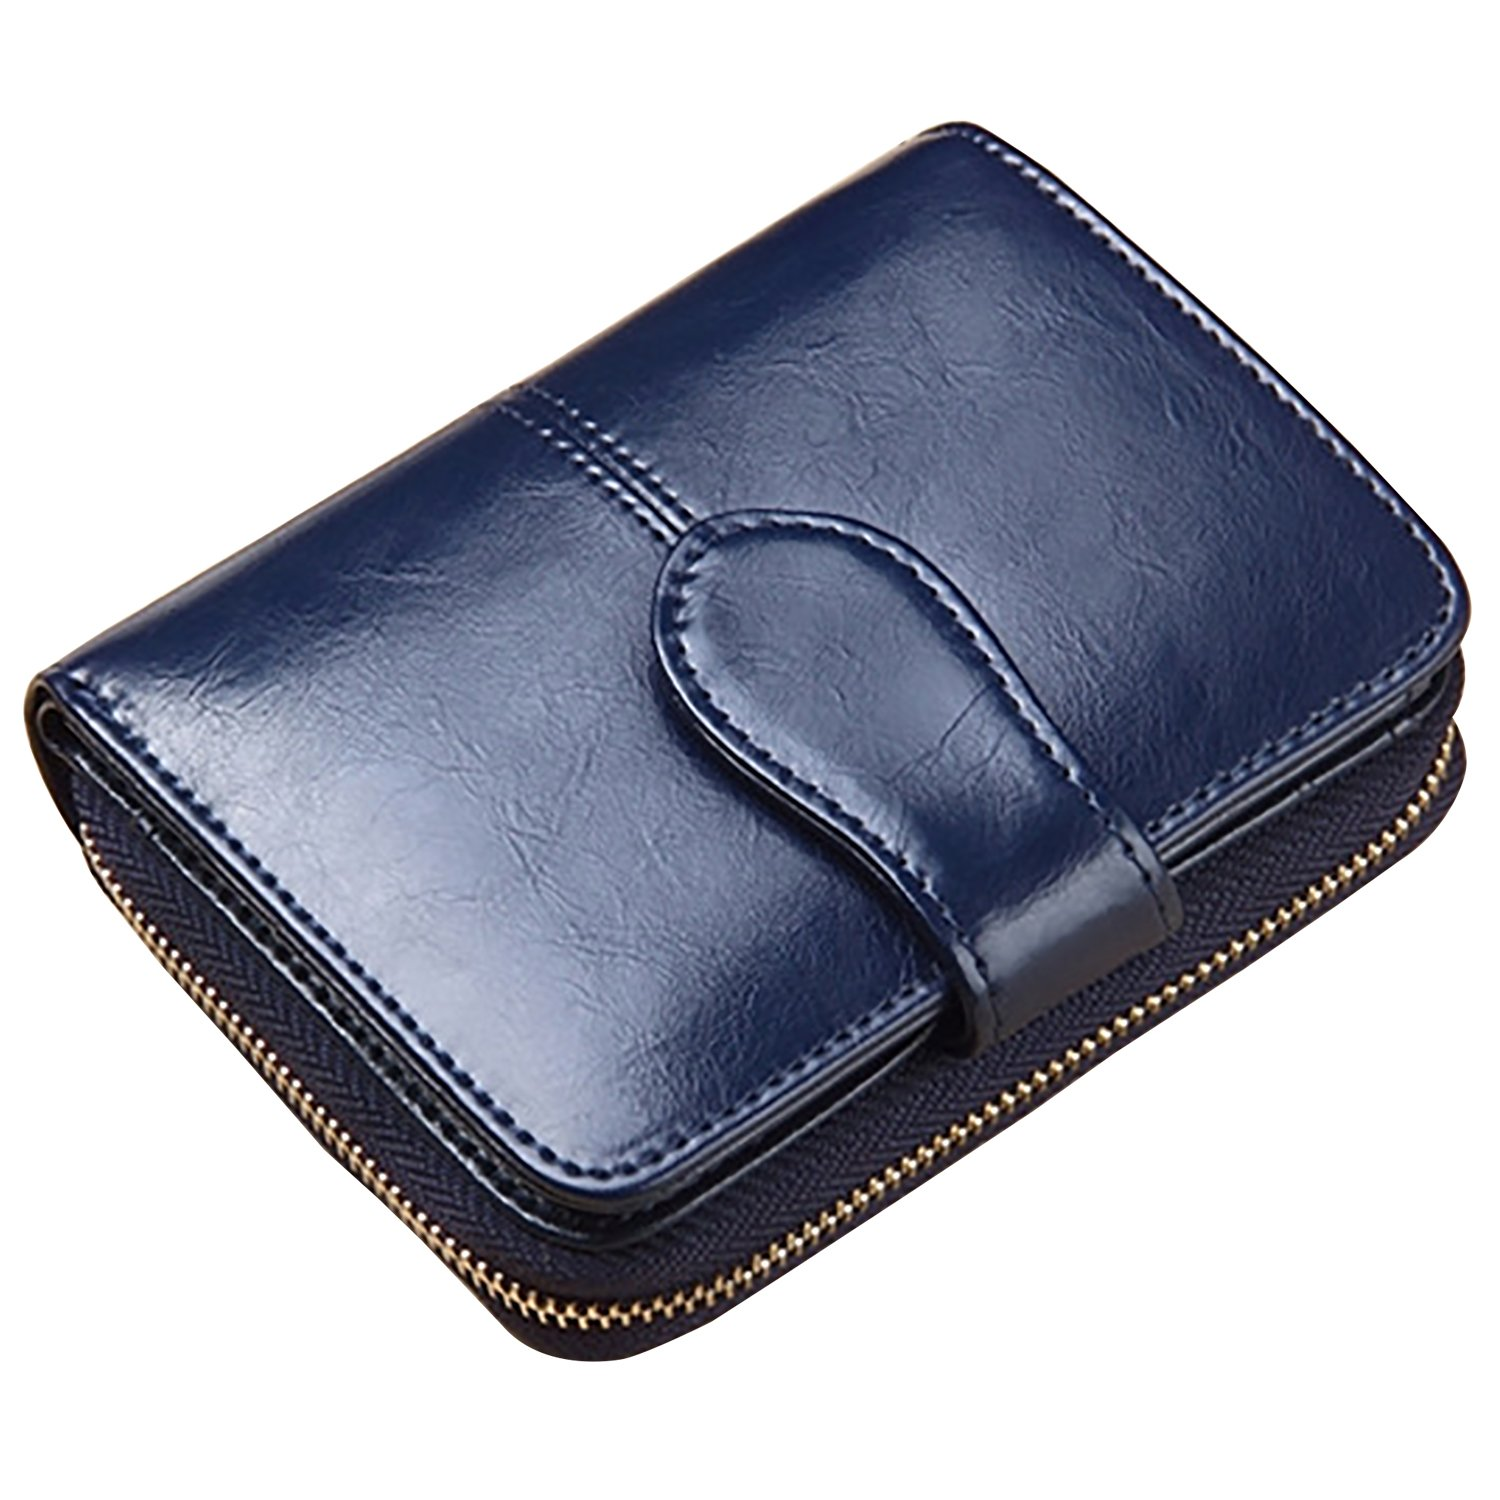 Lomory Accordion Zipper Wallet RFID Oil Wax Leather Credit Card Wallet Small Purse for Women (Blue)